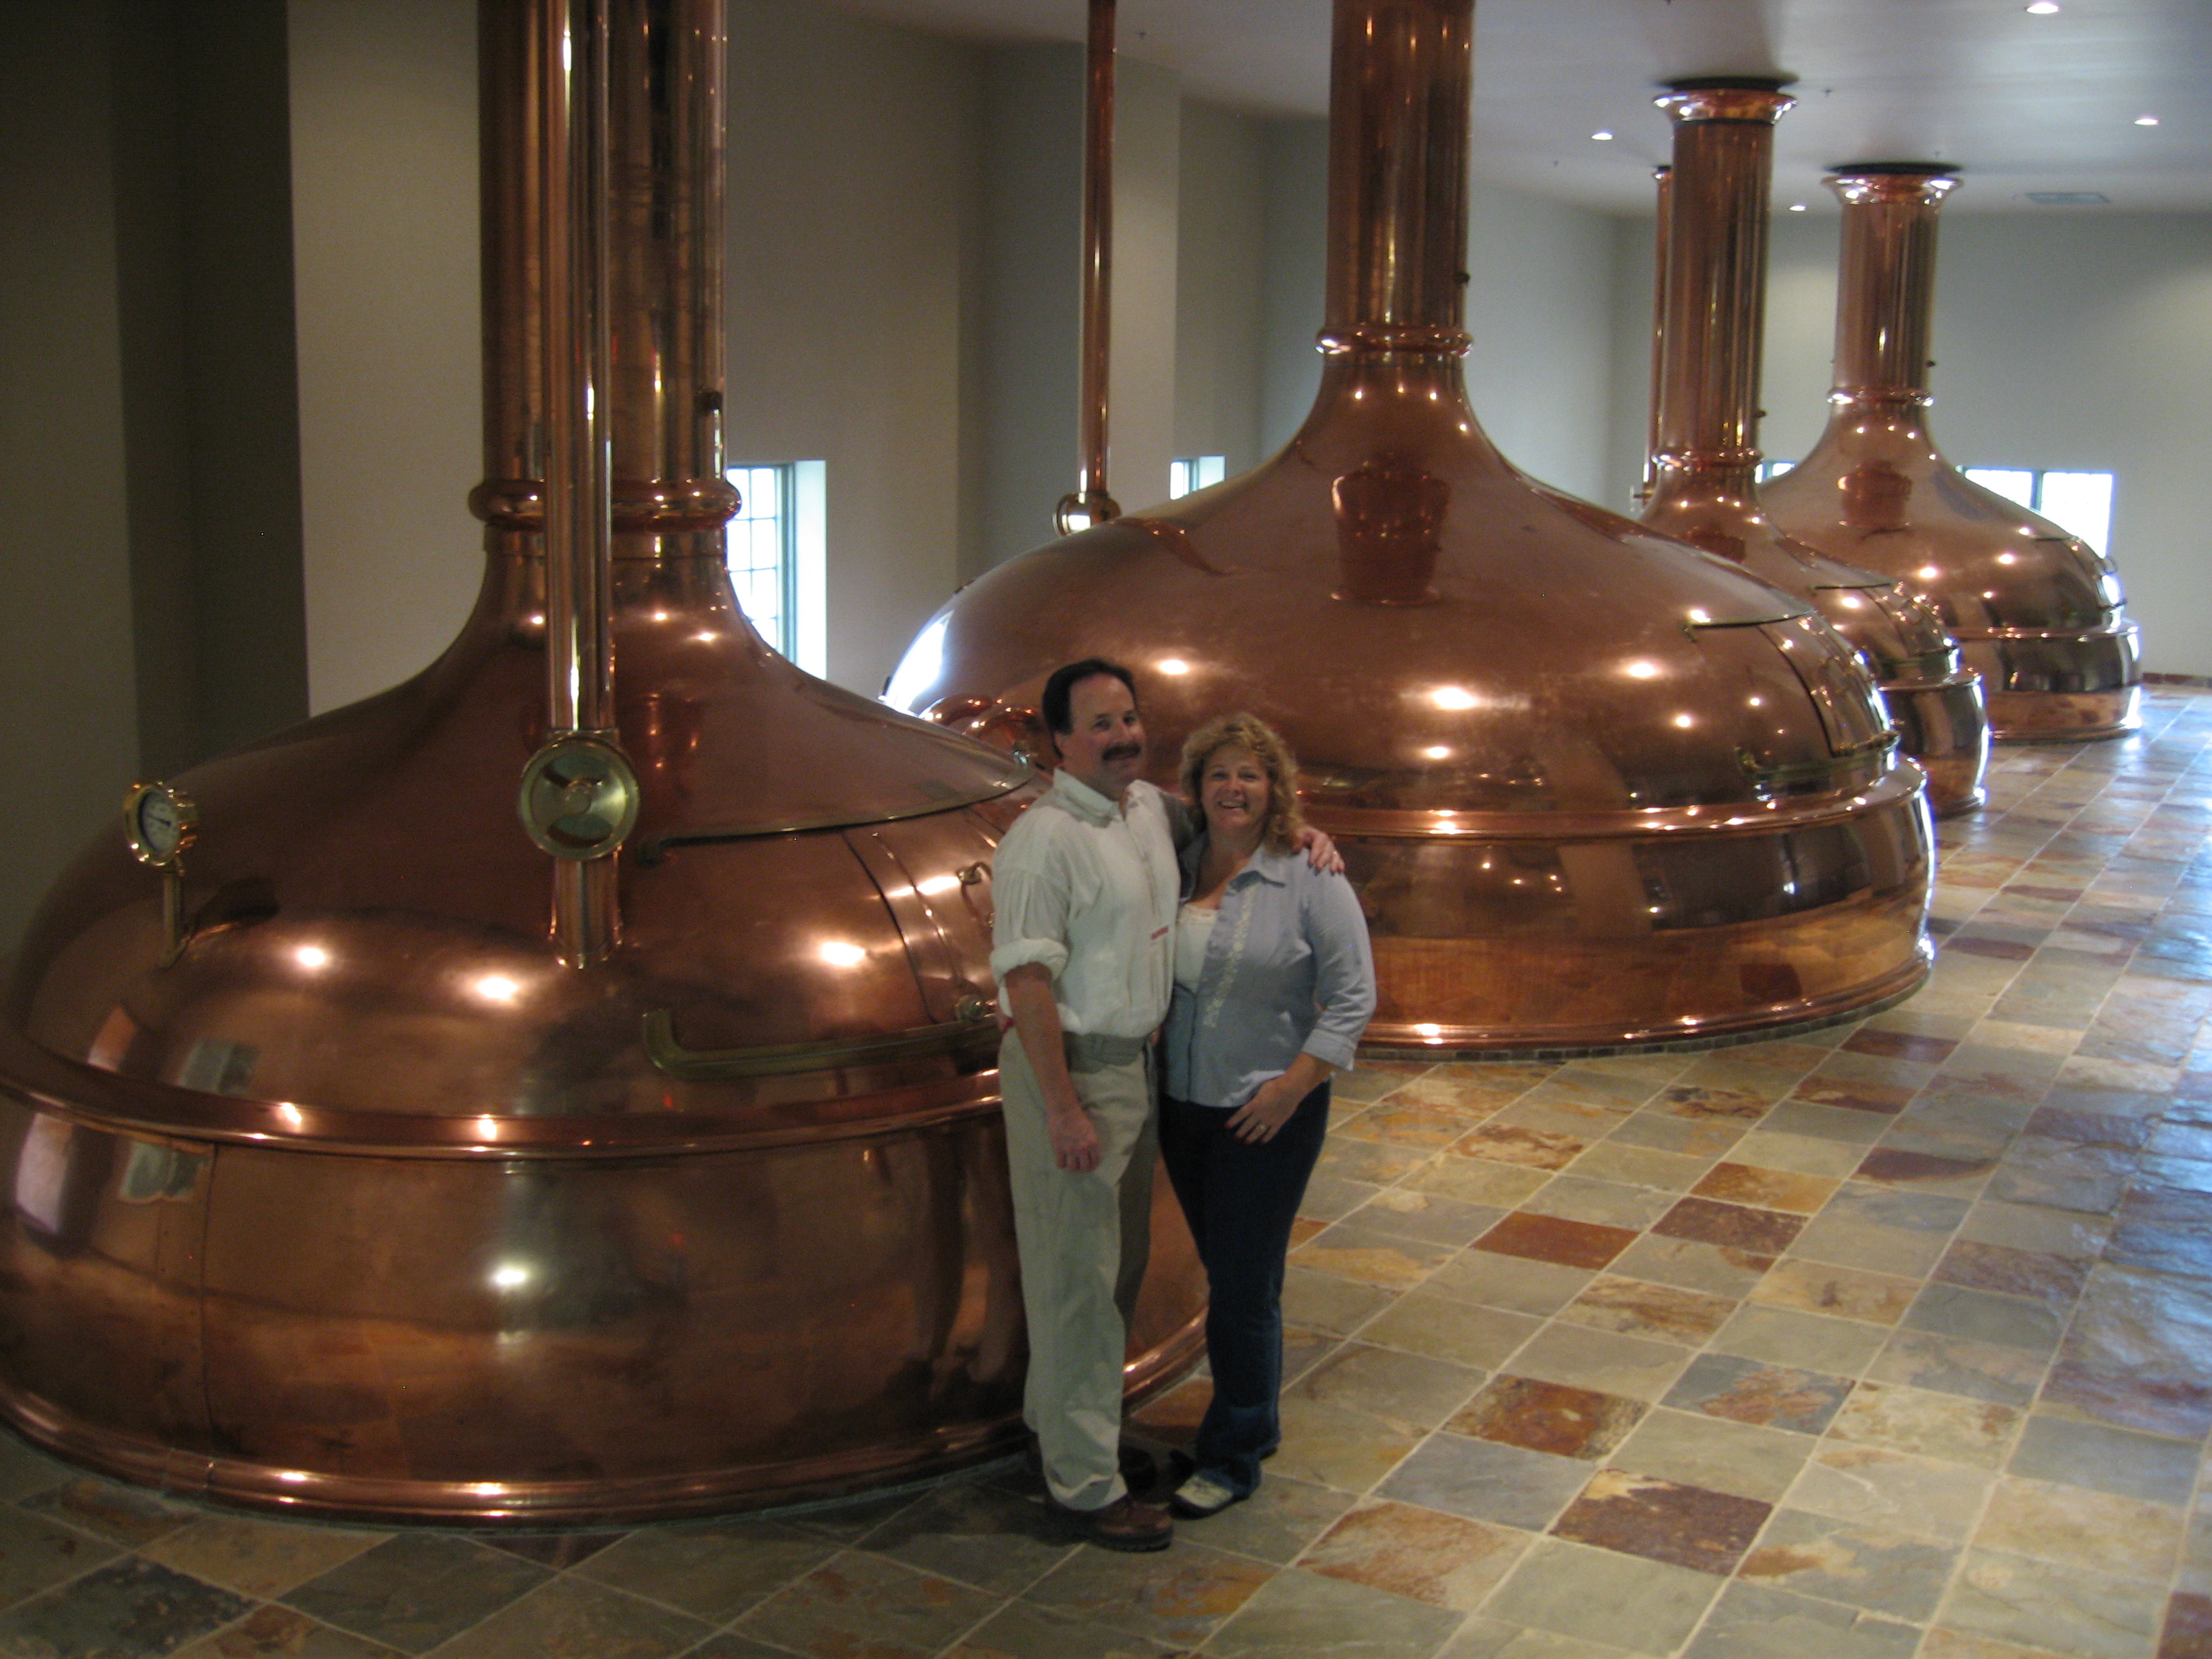 Deb and Dan Carey of New Glarus Brewing Company